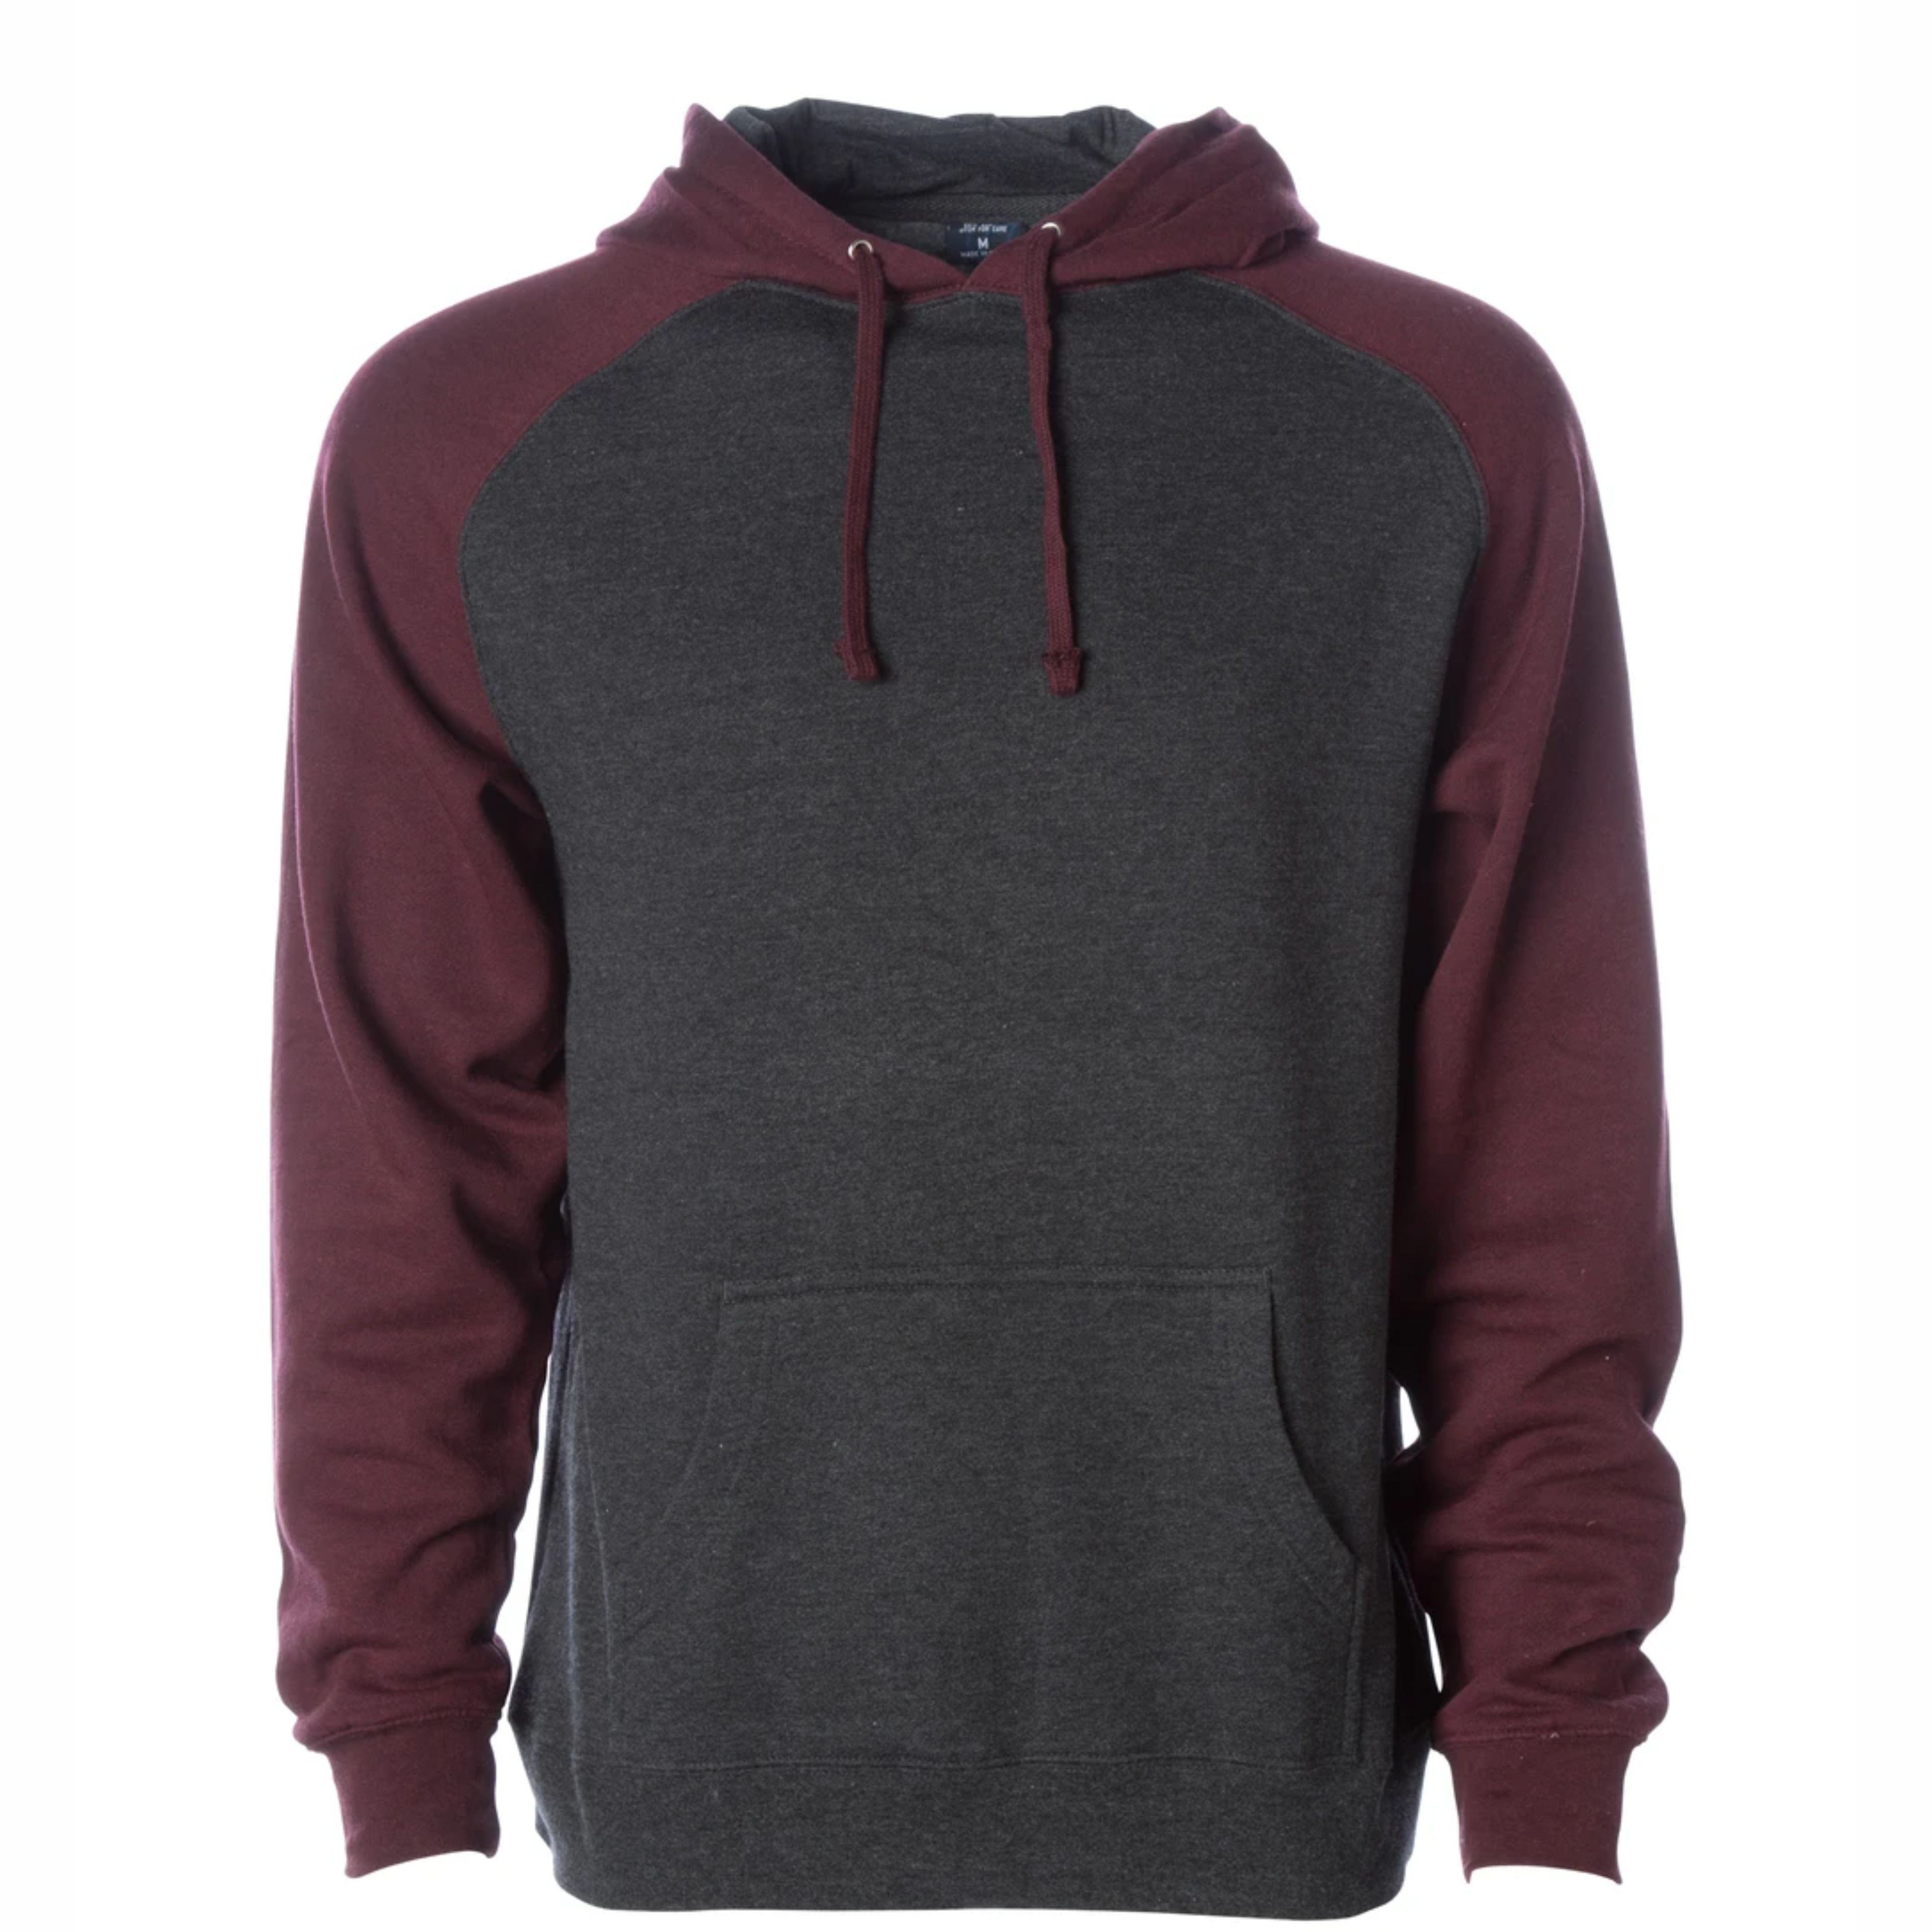 2020 Latest design men hoodies made in Pakistan OEM Customized Pullover by Quki.pk